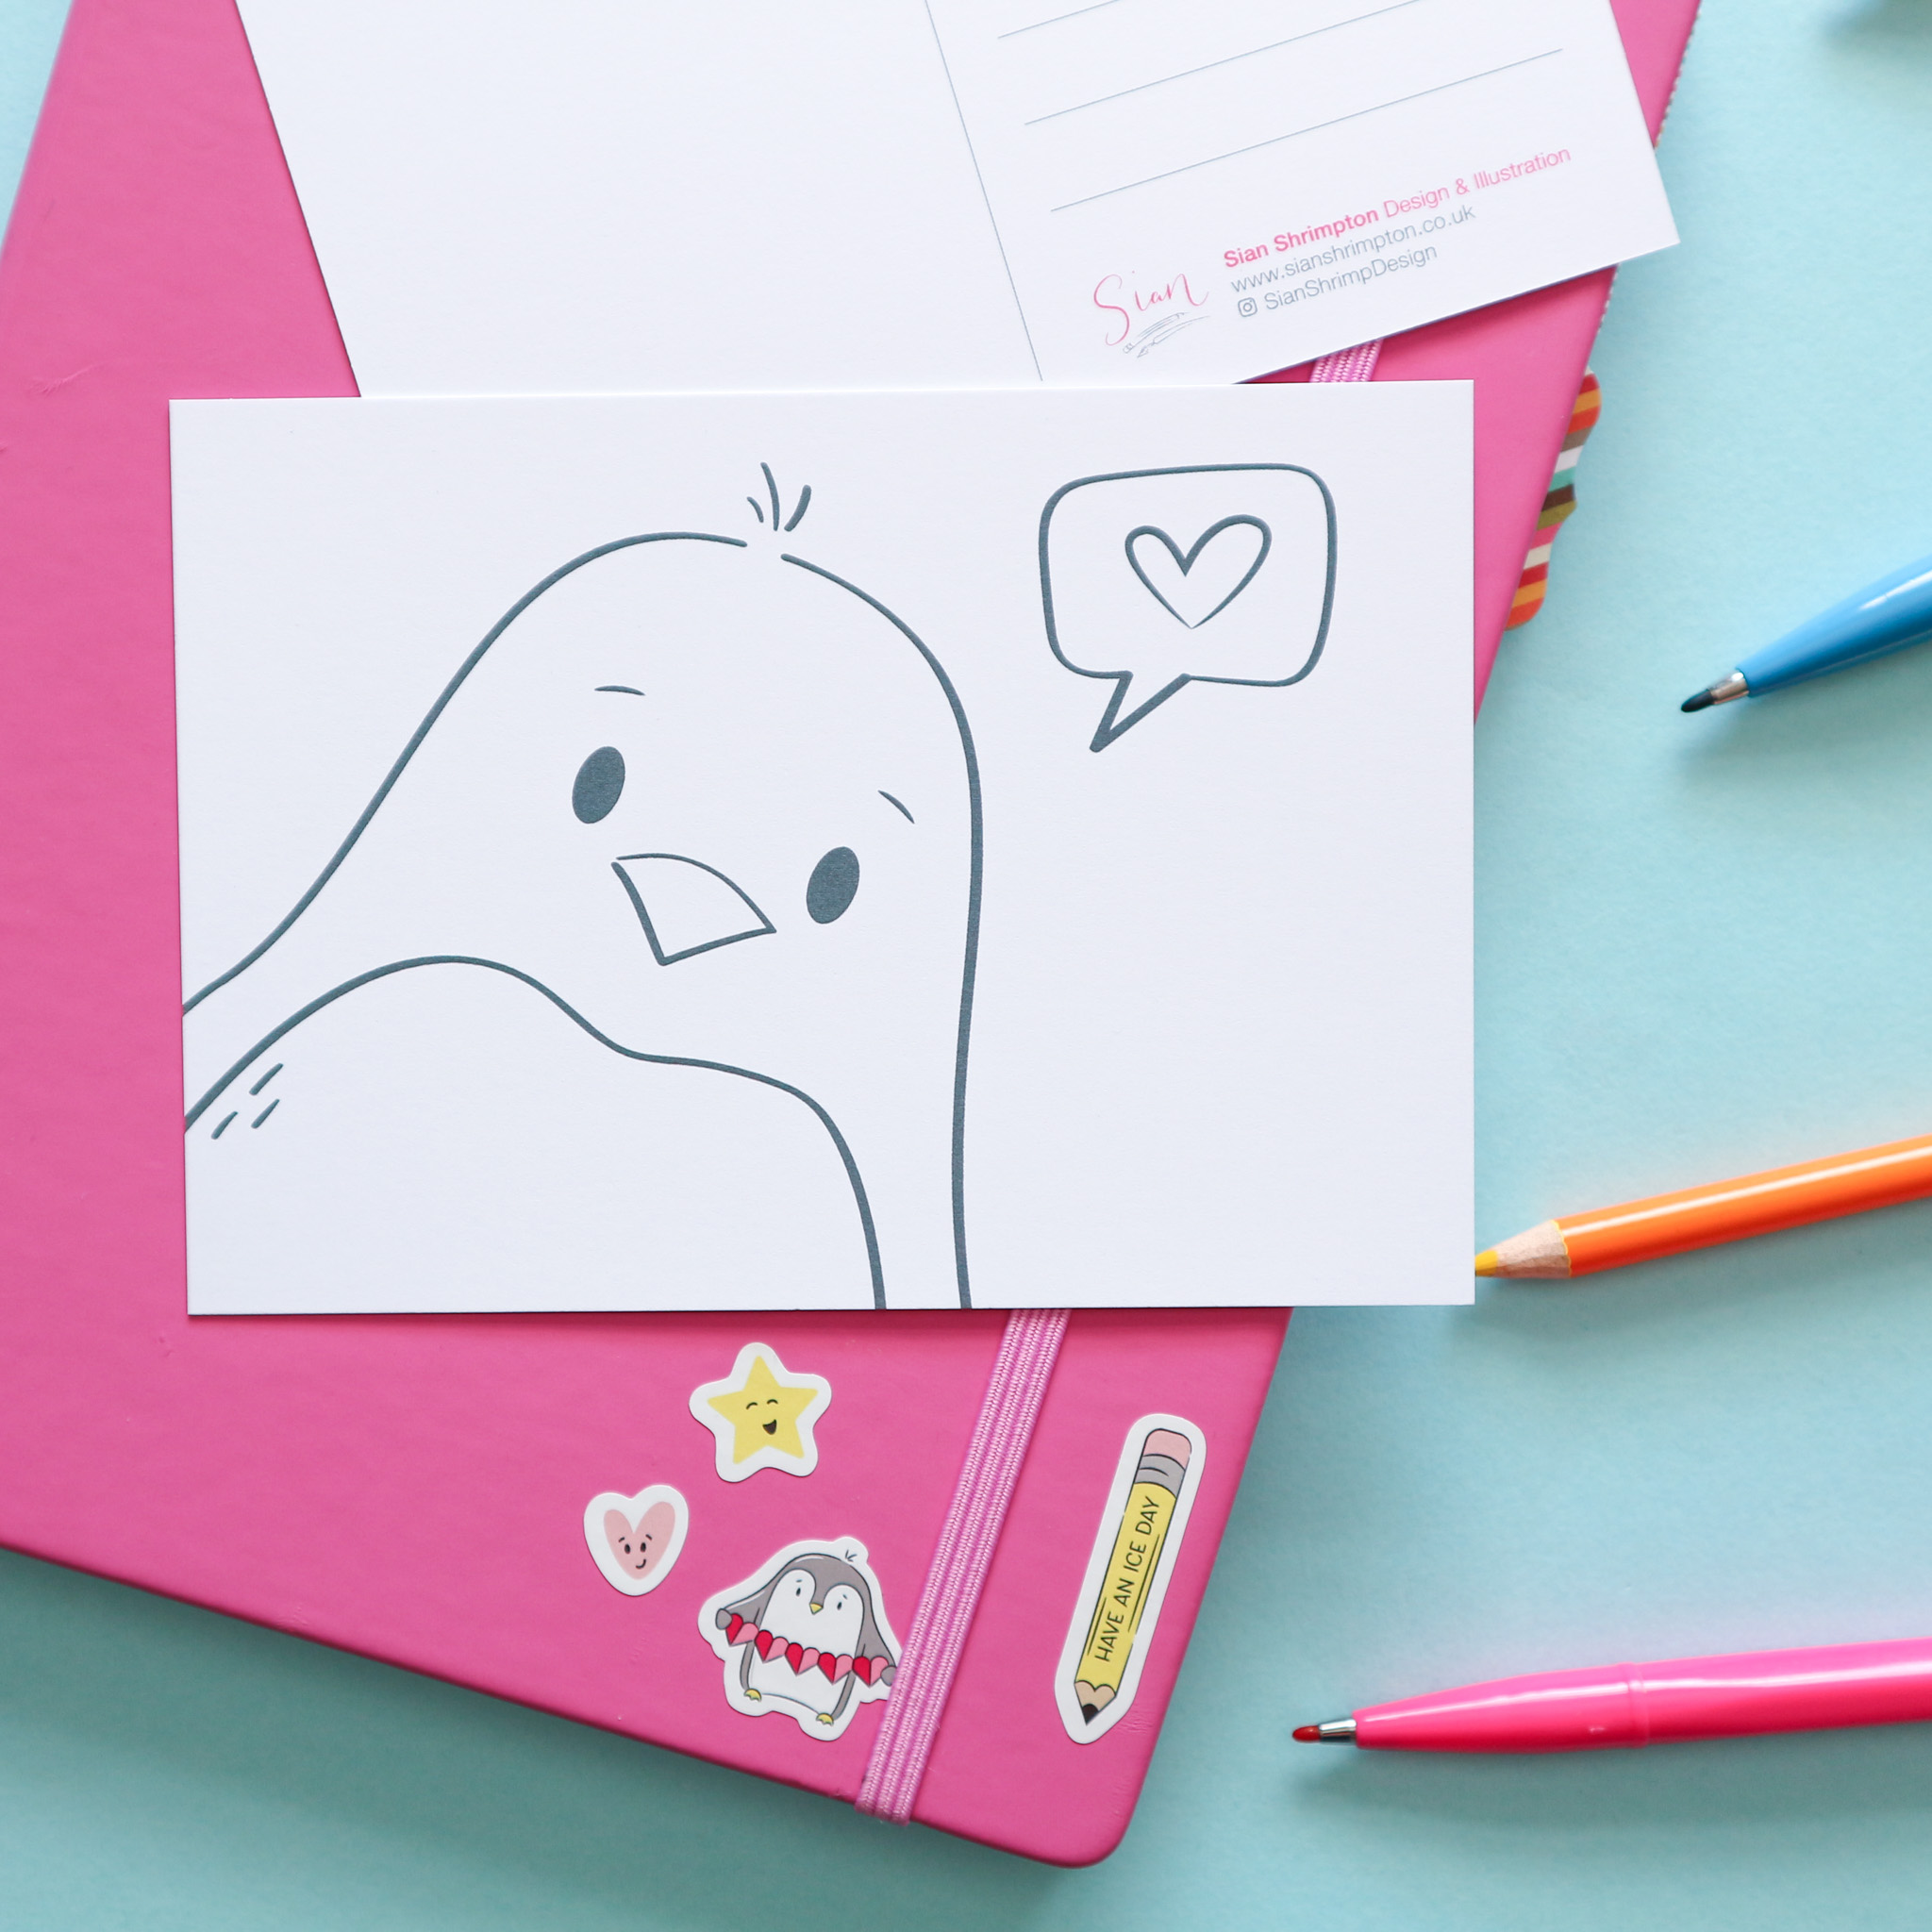 Postcard design showing an illustration which is un-coloured, to be coloured in by you or the recipient. This design shows a penguin with a speech bubble with a heart inside.